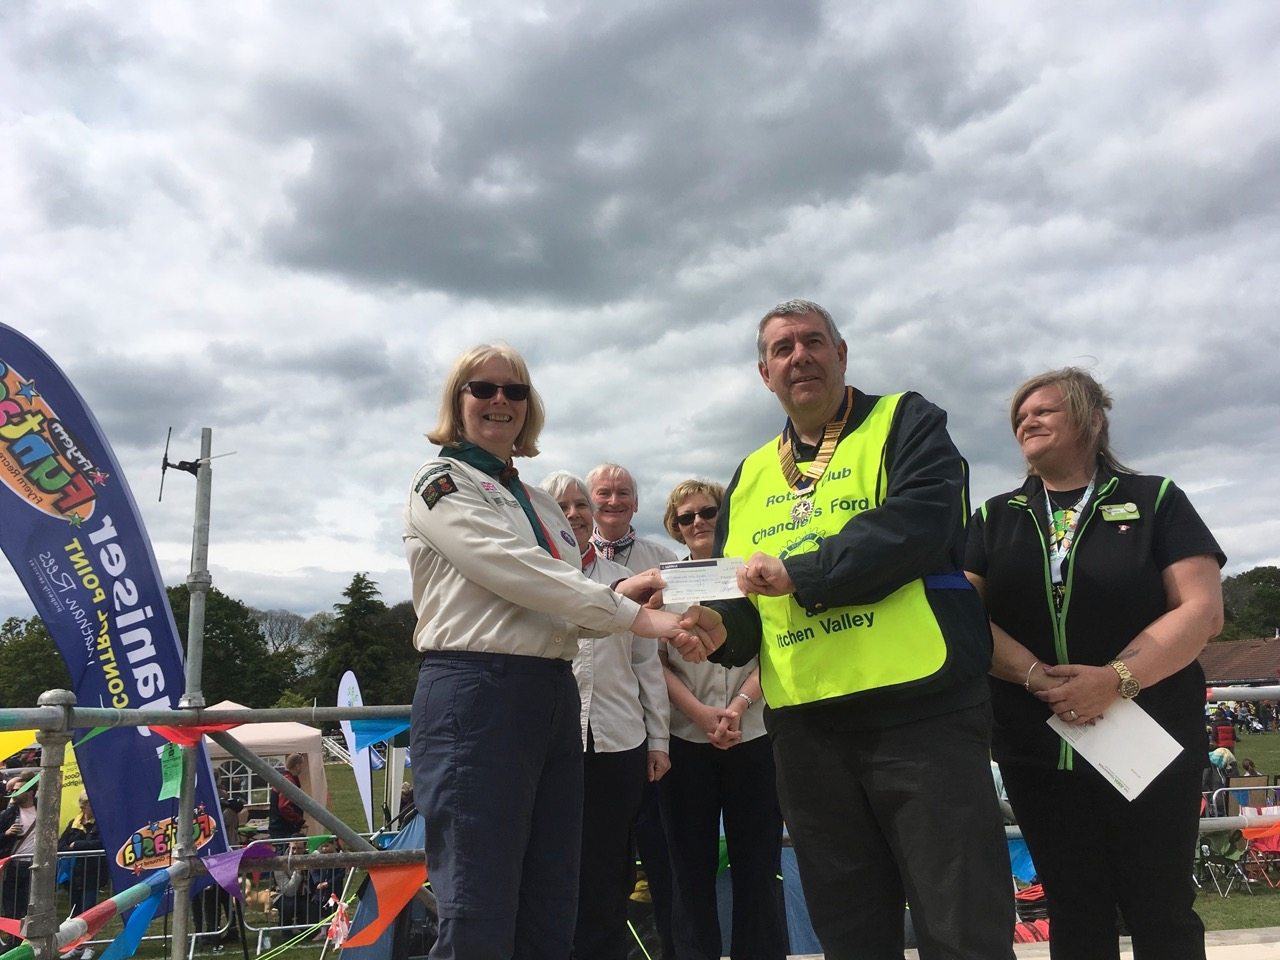 President of Rotary Ed Burt handing over the cheque for £3000 raised by Rotary for Chandler's Ford 15th, to Susan Deeks, group Scout Leader for the 15th Scout Group.